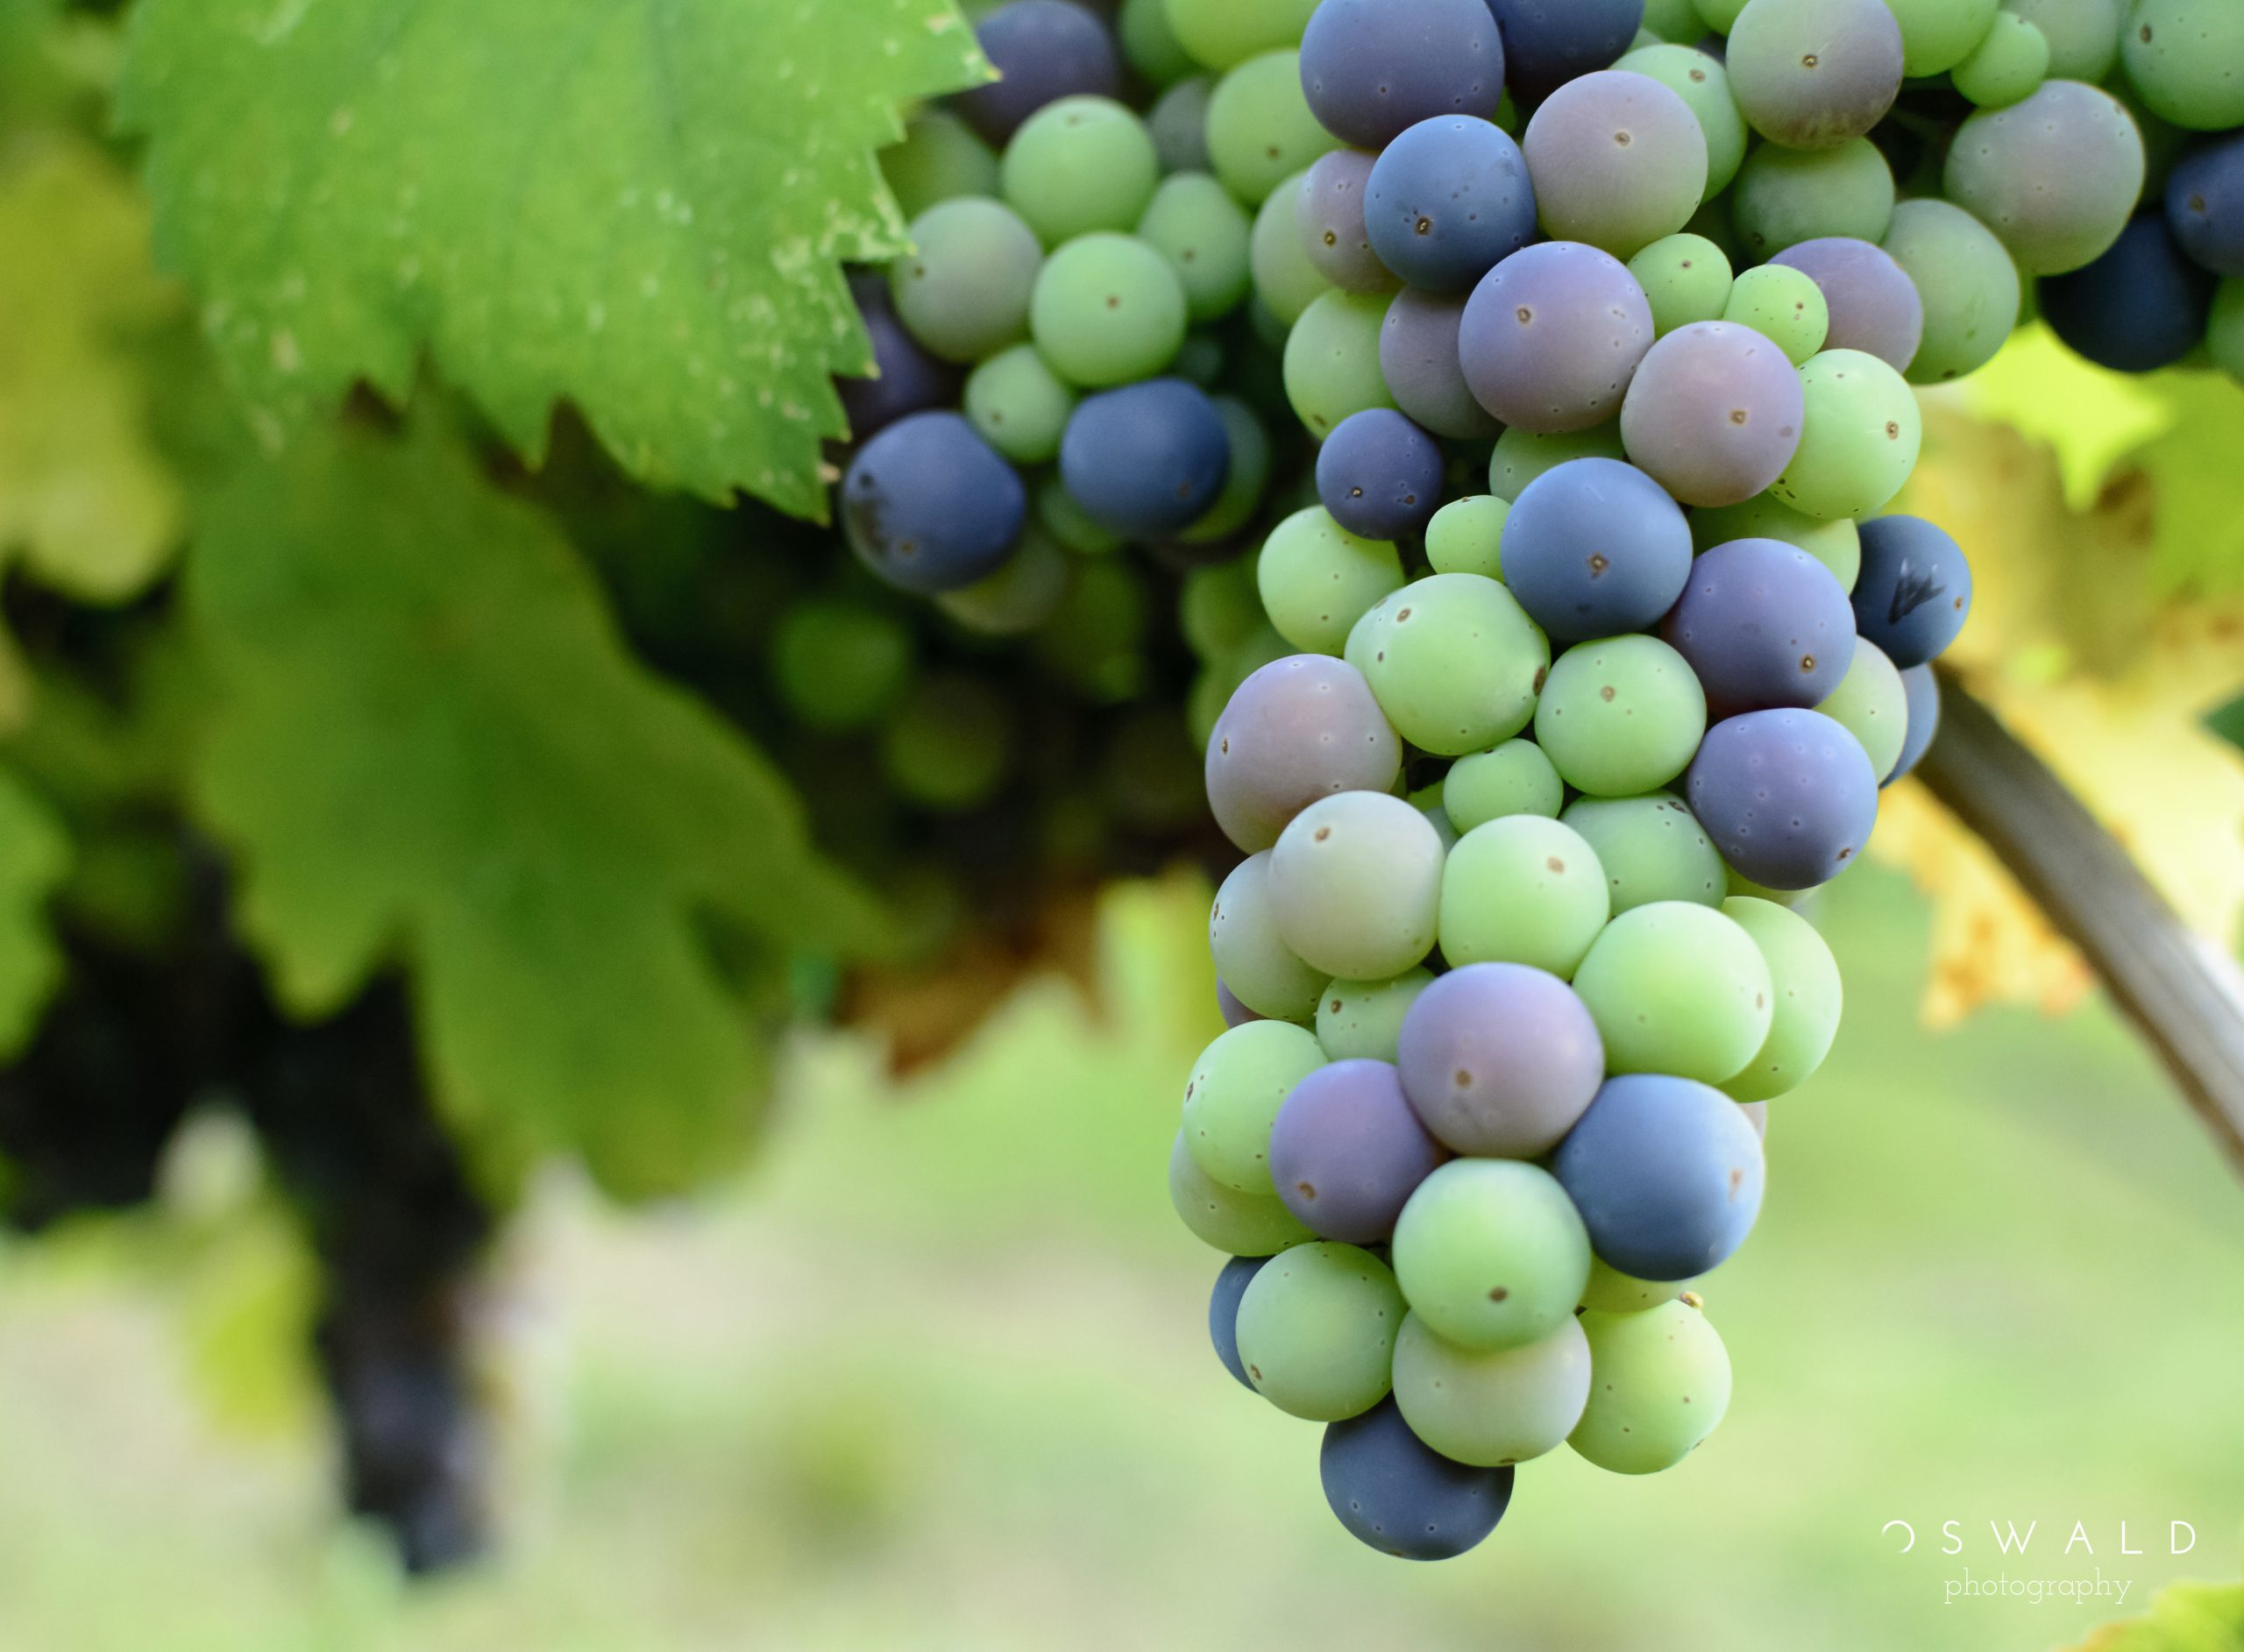 Photography of a bunch of grapes hanging on the vine, with the individual grapes in various stages of ripening.